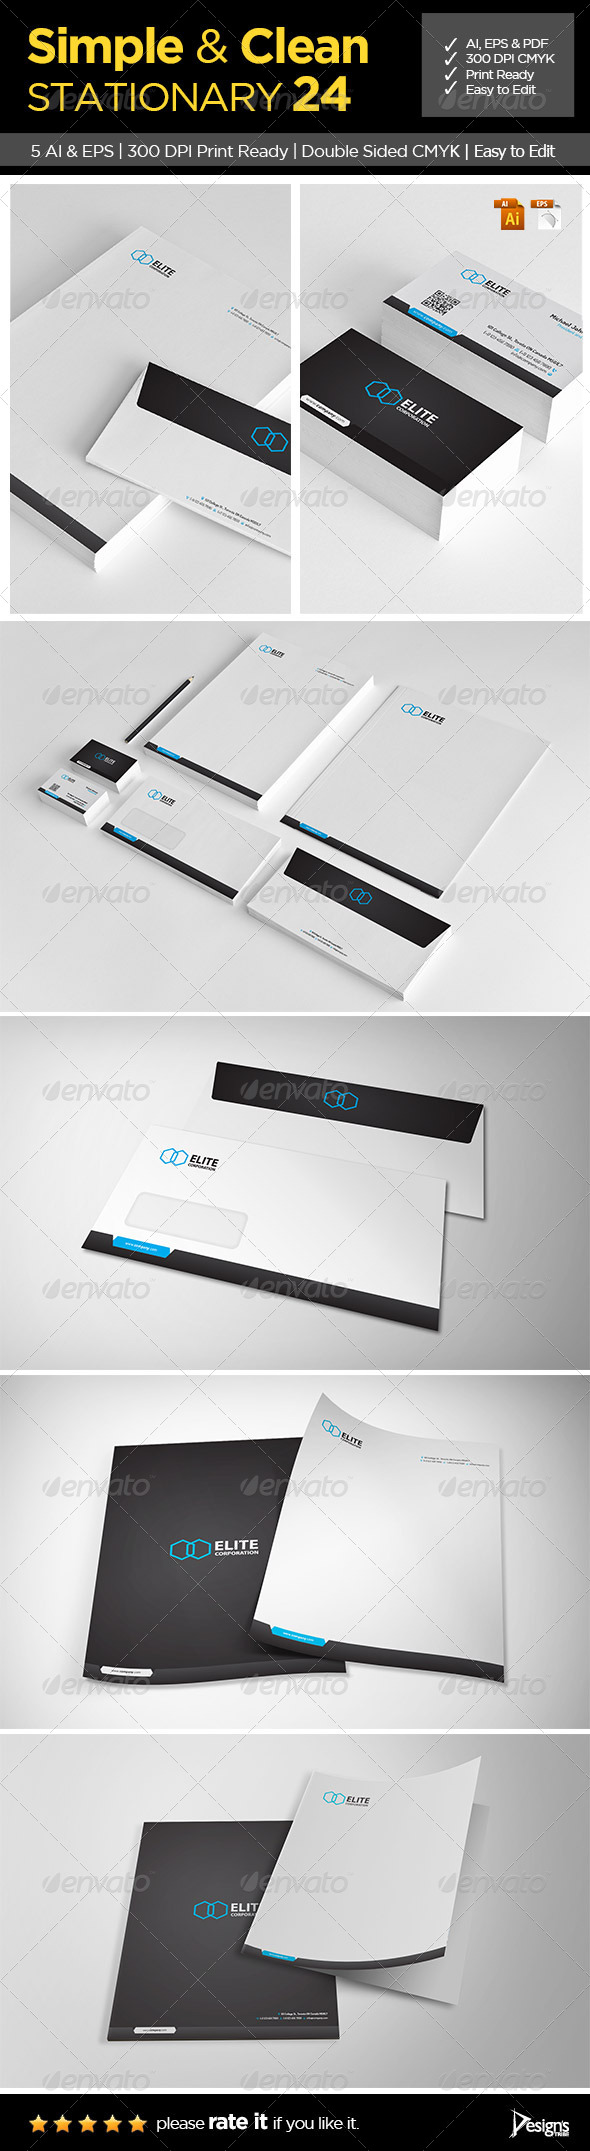 GraphicRiver Simple and Clean Stationery 24 6790028